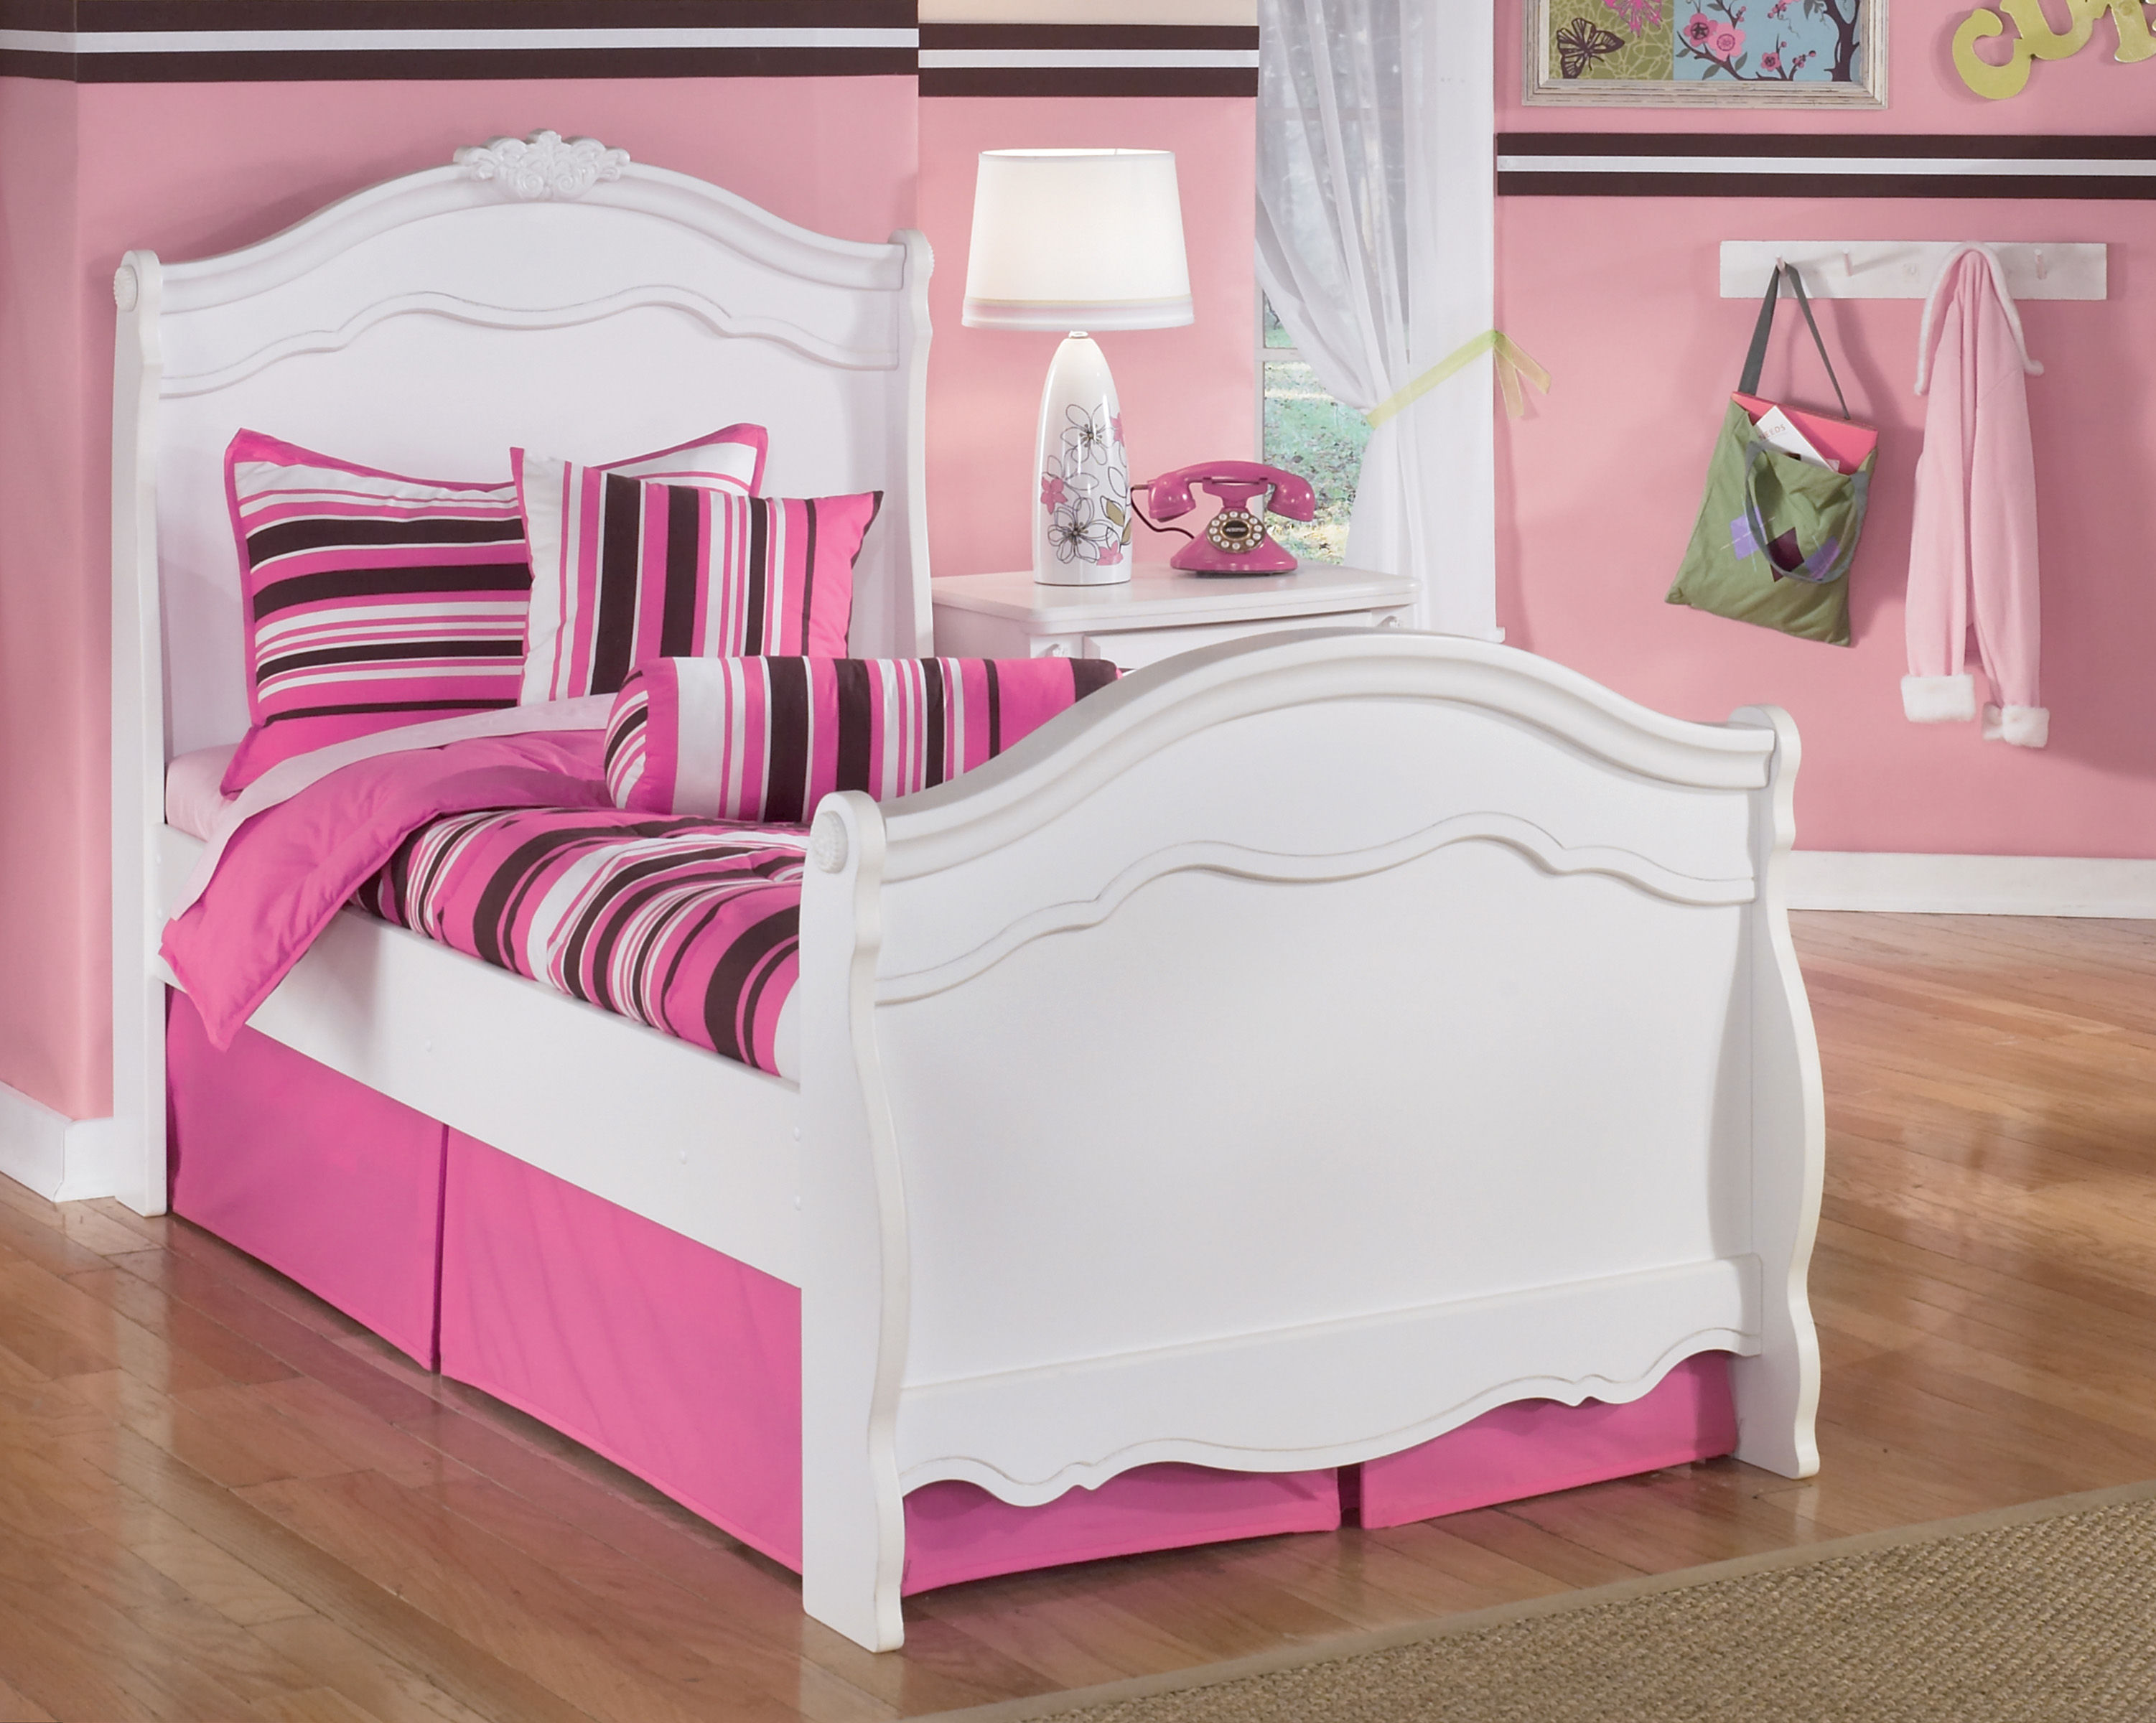 Ashley Furniture Exquisite Luminous White Sleigh Bed The Classy Home